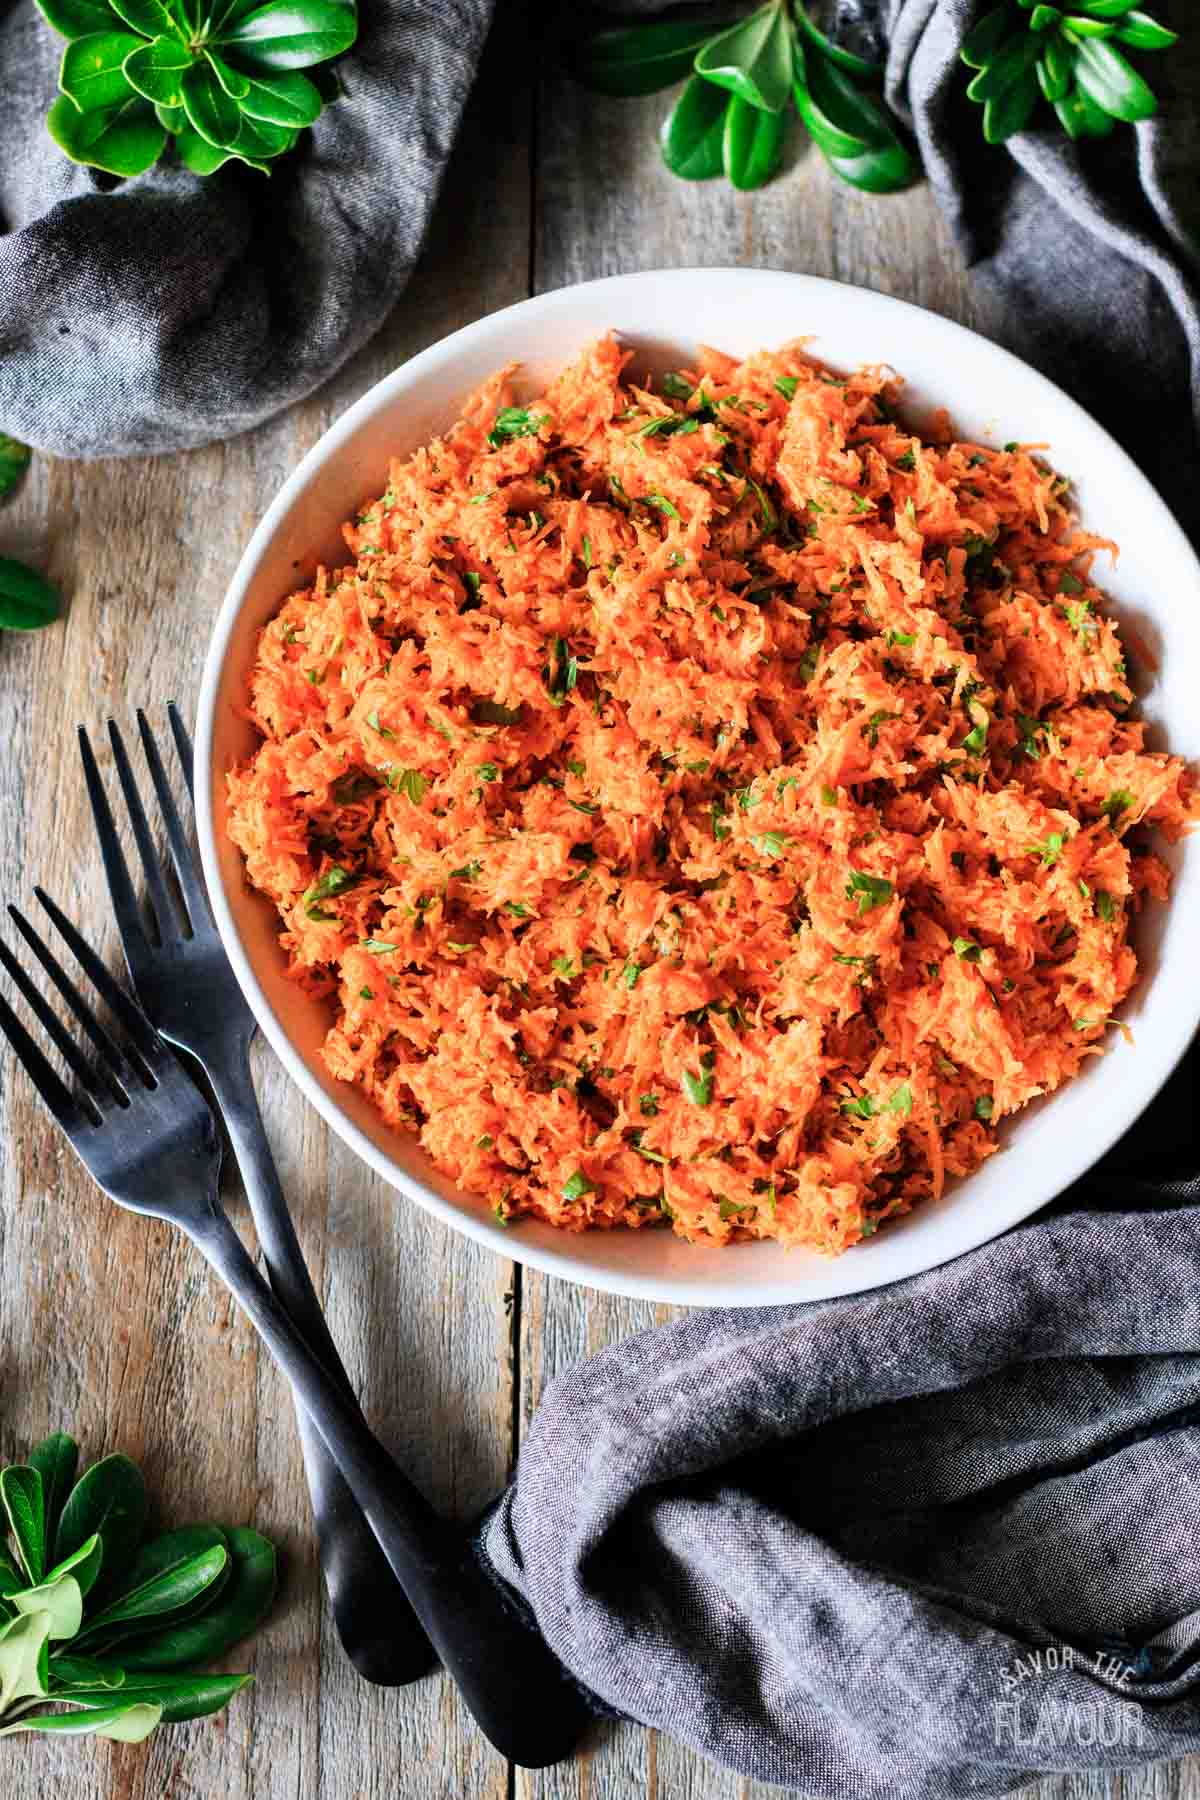 top view of a bowl of French carrot salad